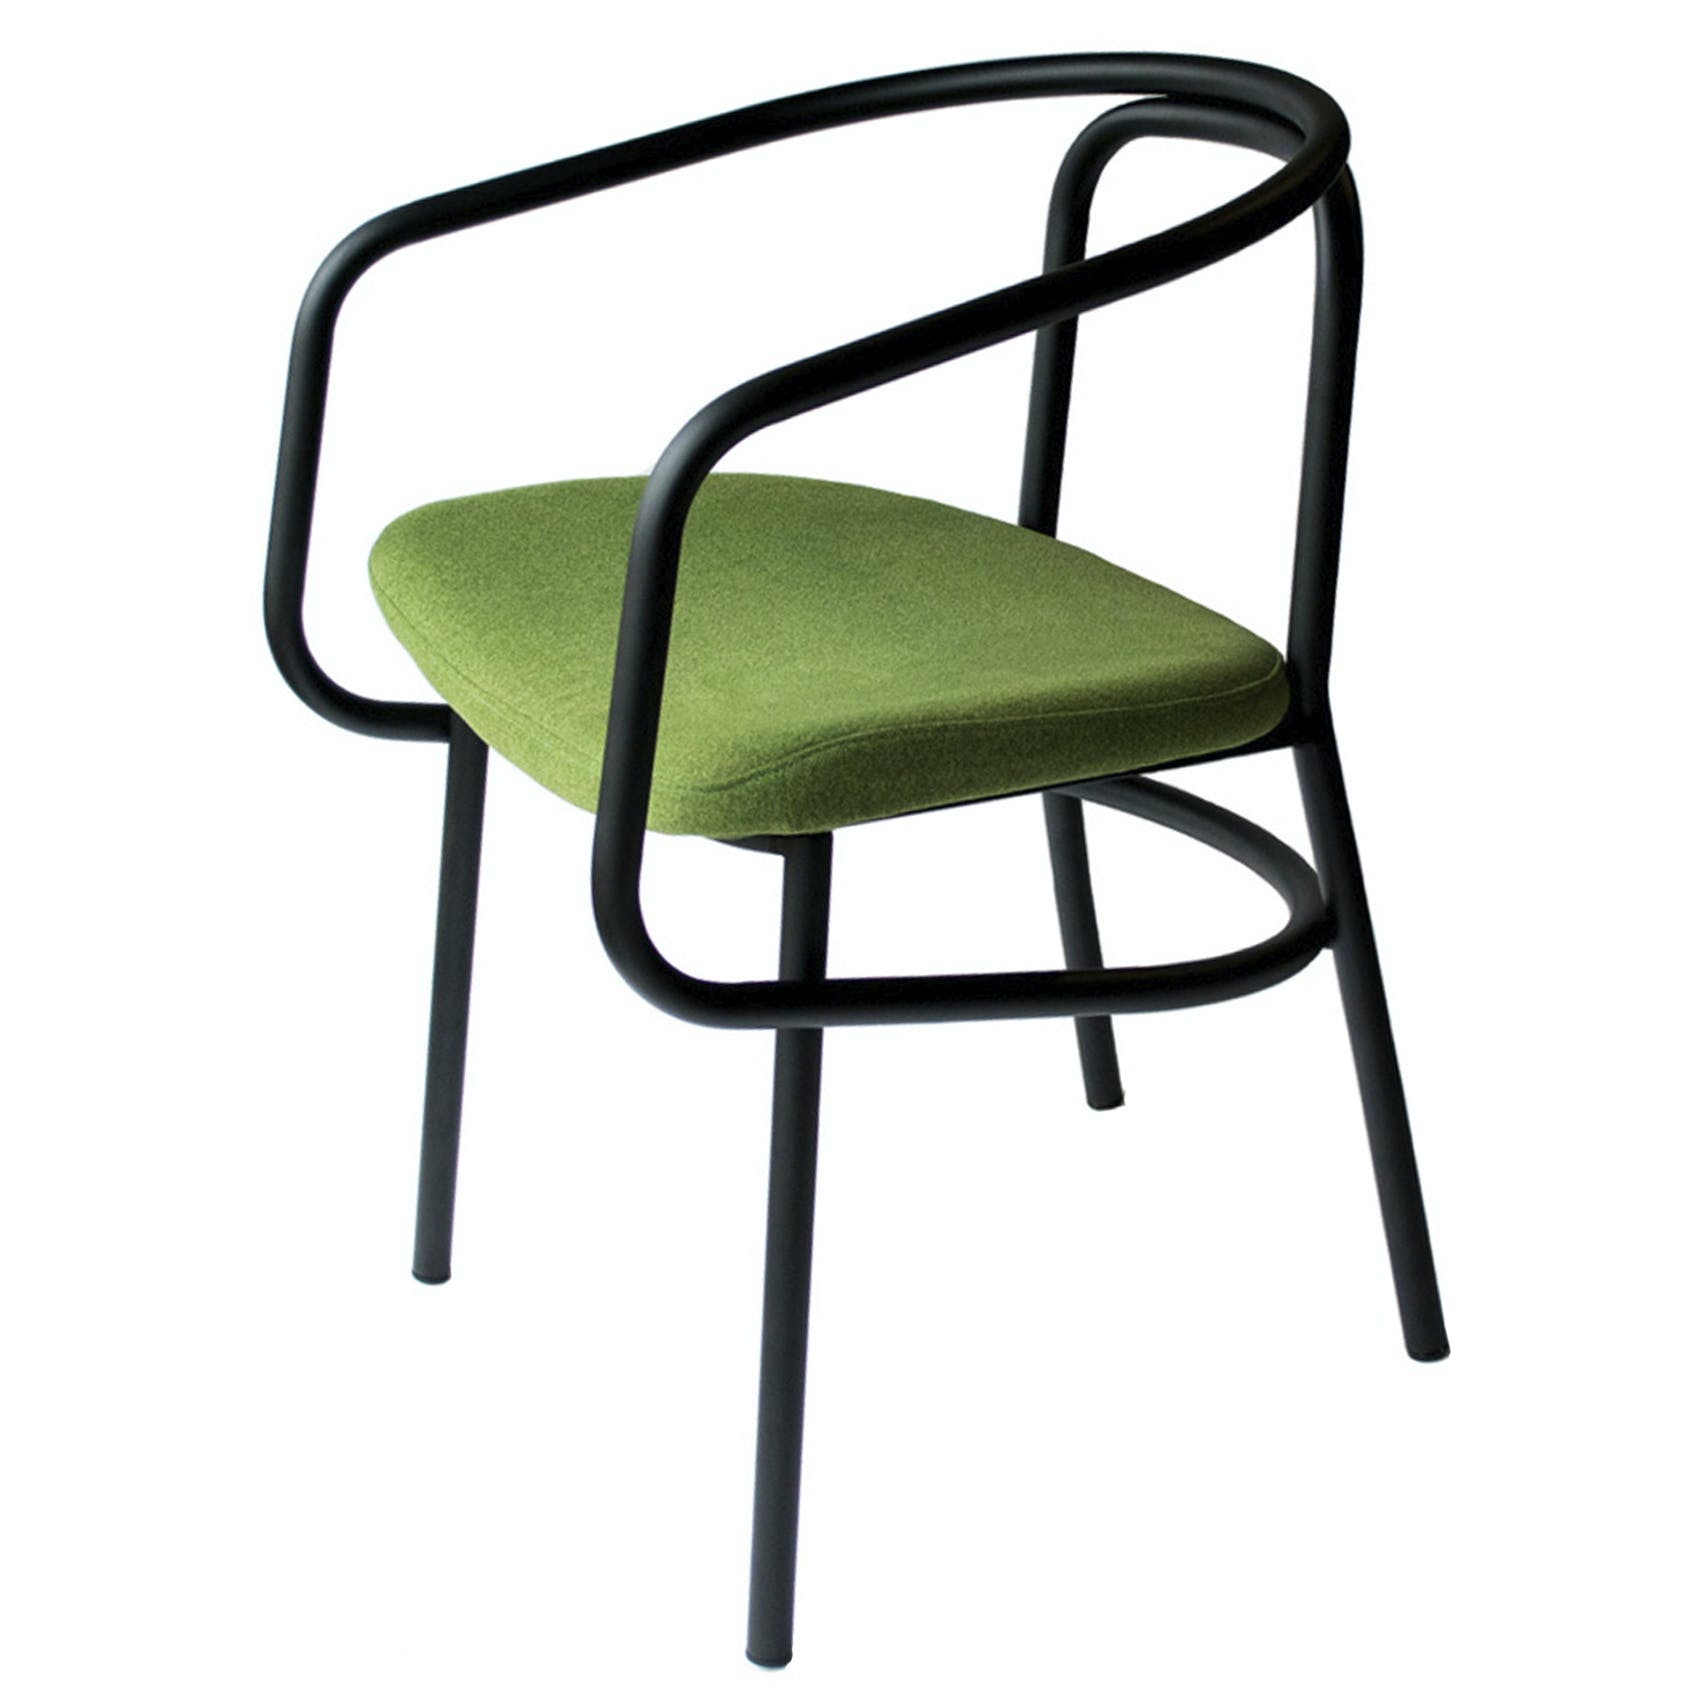 Division-12-arm-chair-haute-living-thumbnail